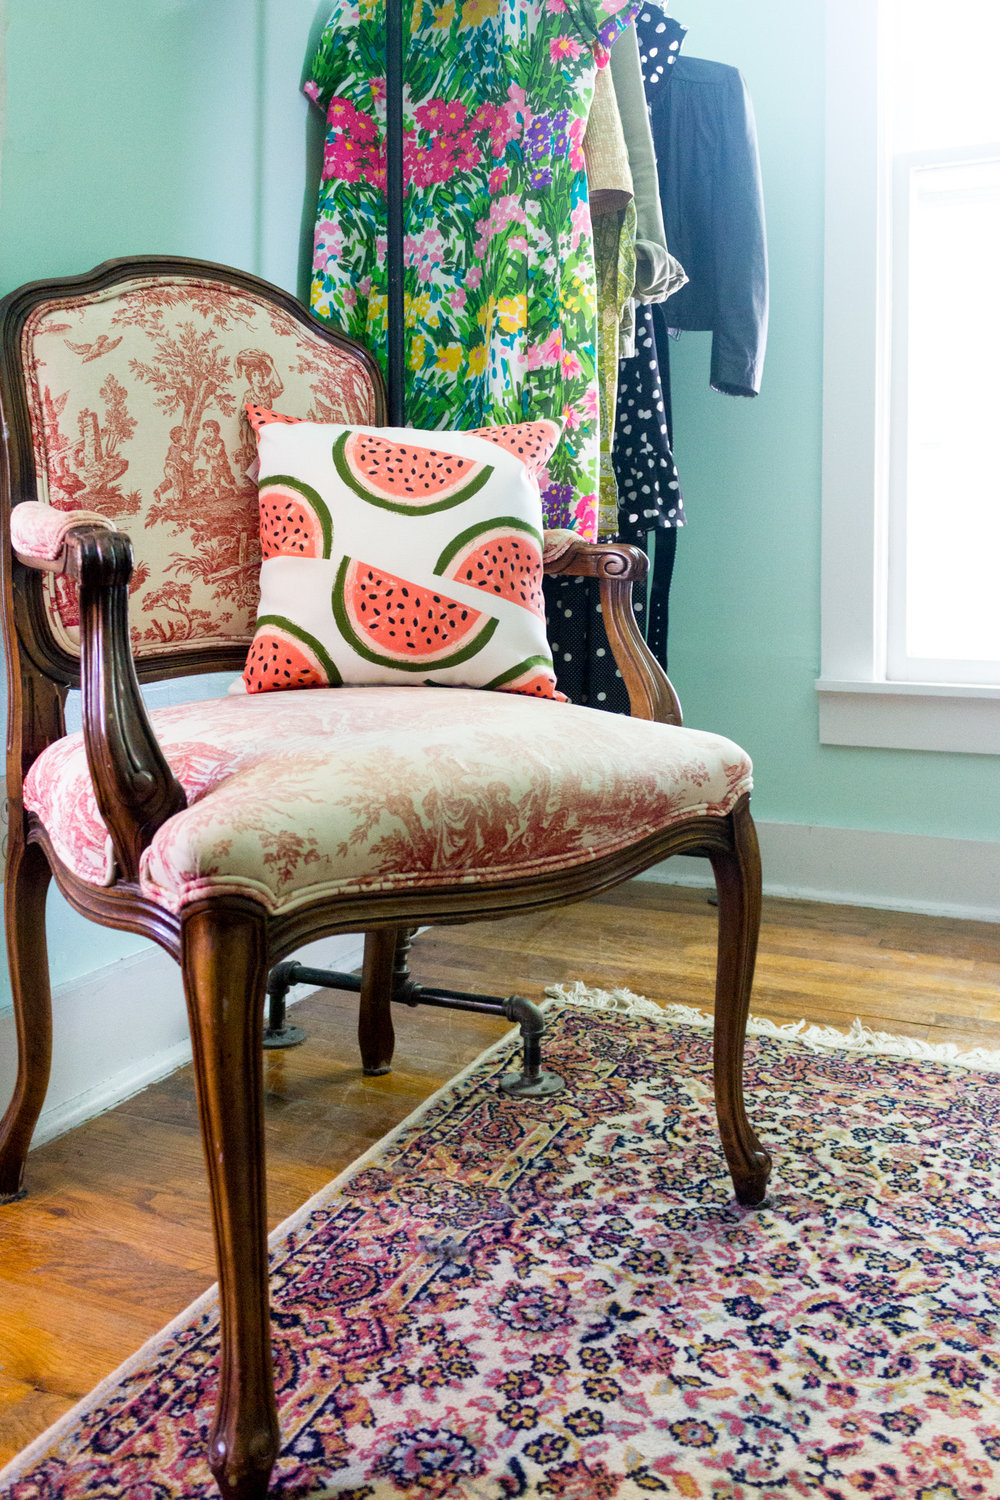 Dressing Room with Toile Antique Chair and Watermelon Pillow